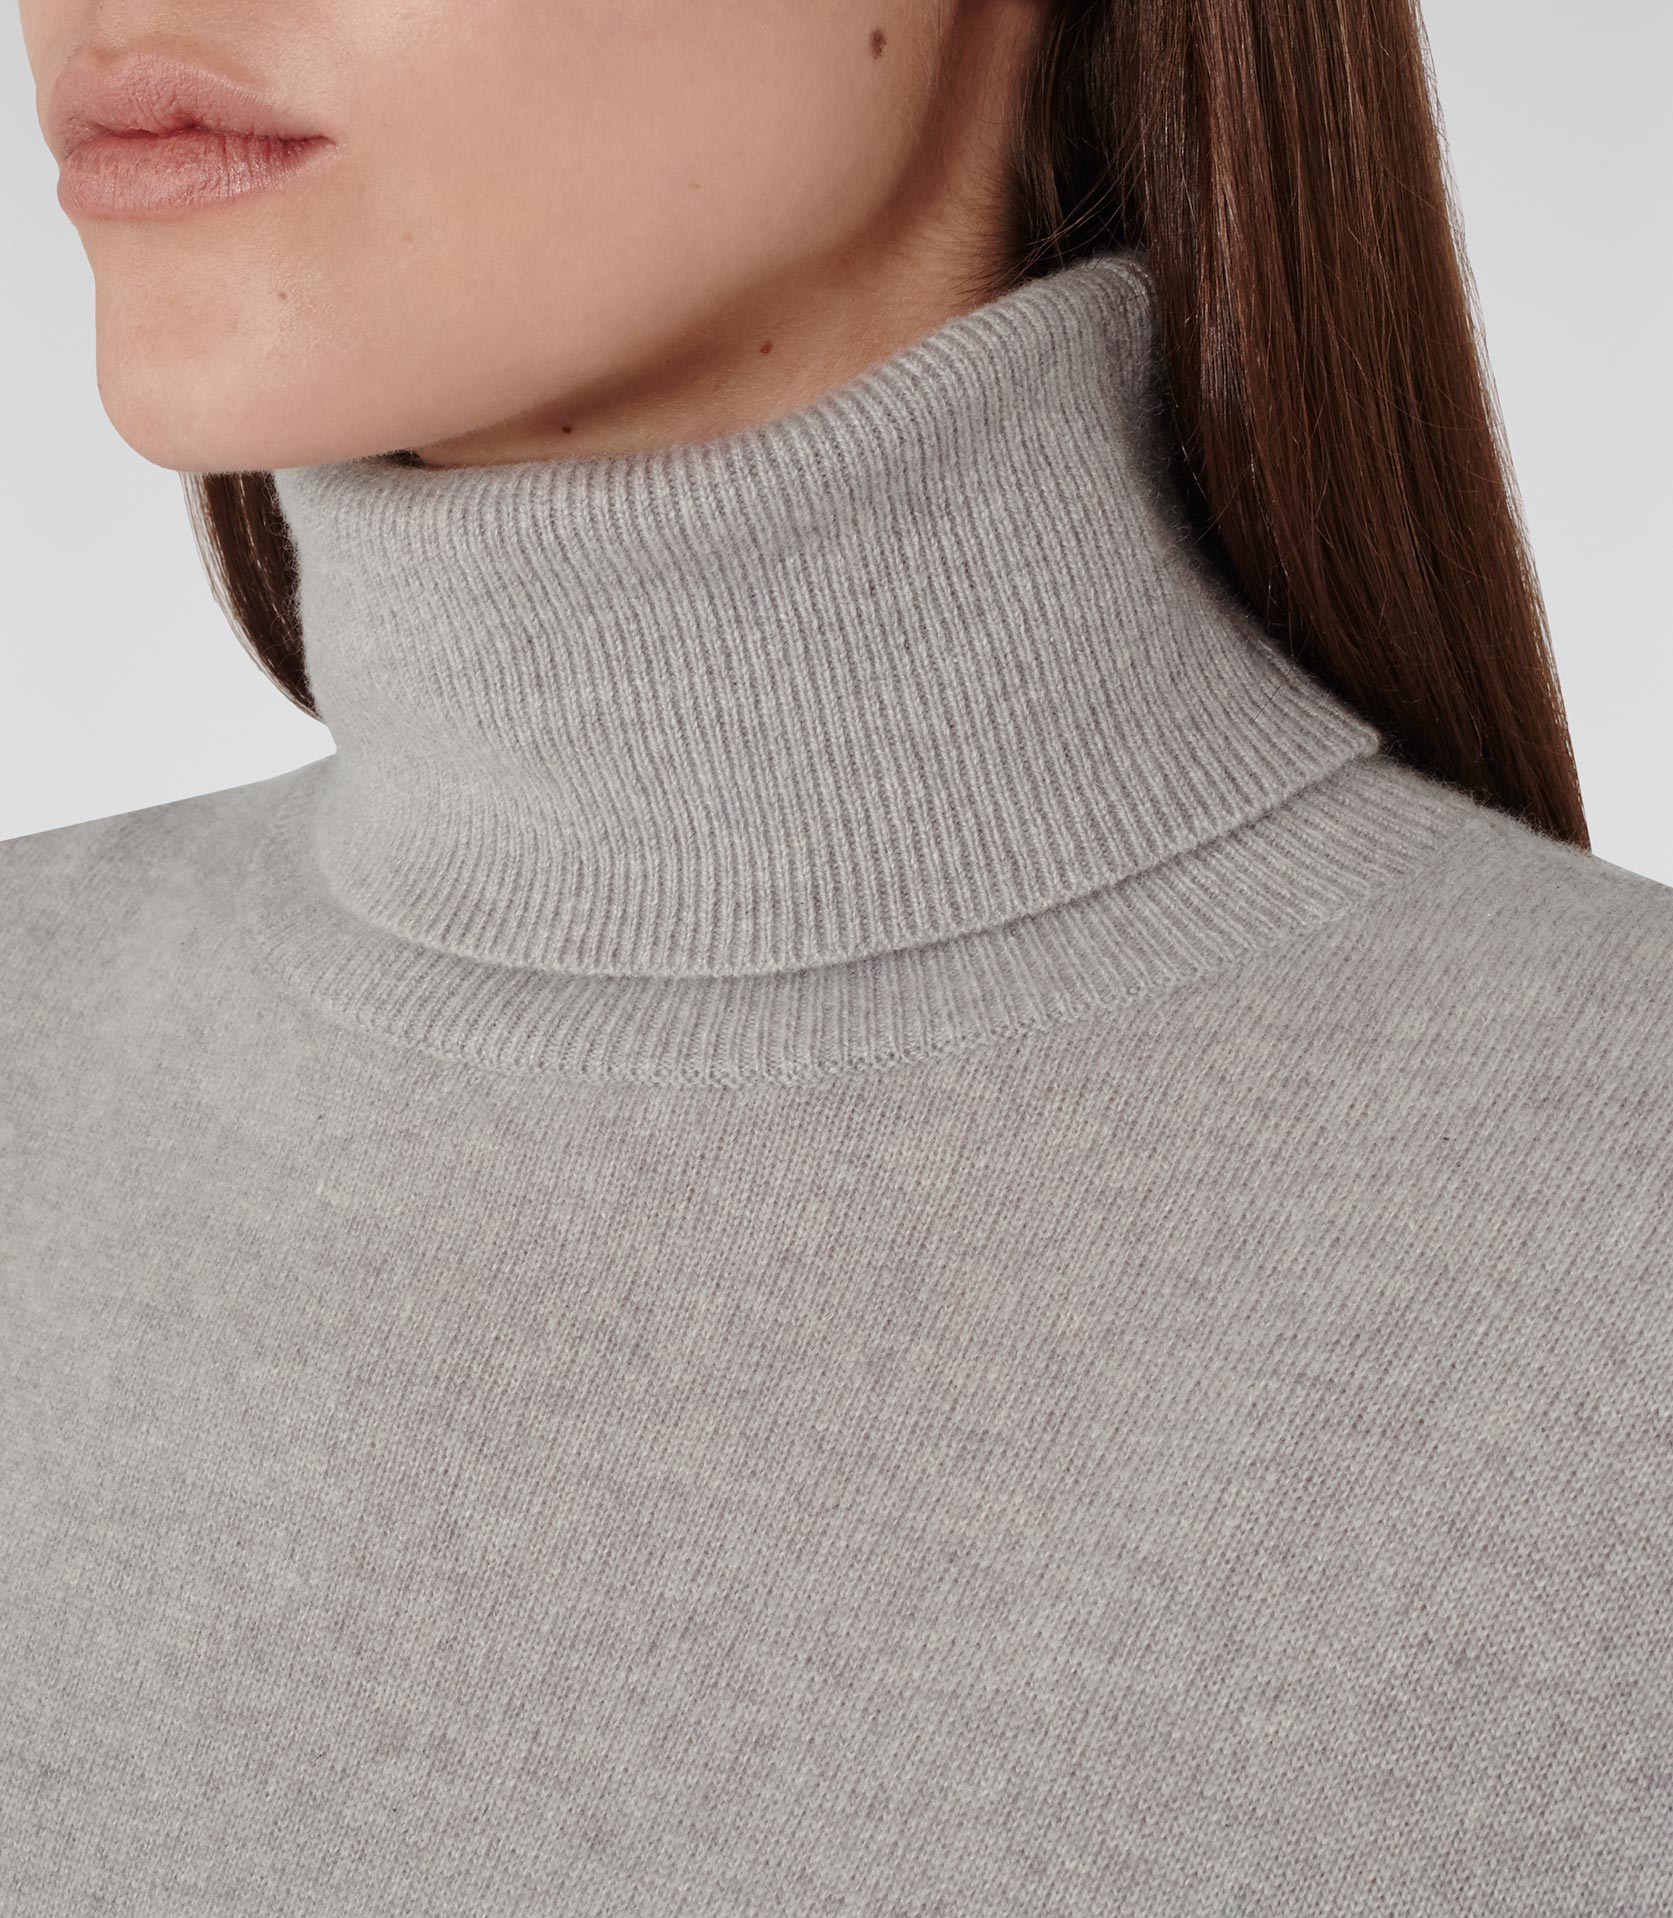 f5d6c5ae2 Reiss Zoya Cashmere Roll-neck Jumper in Gray - Lyst